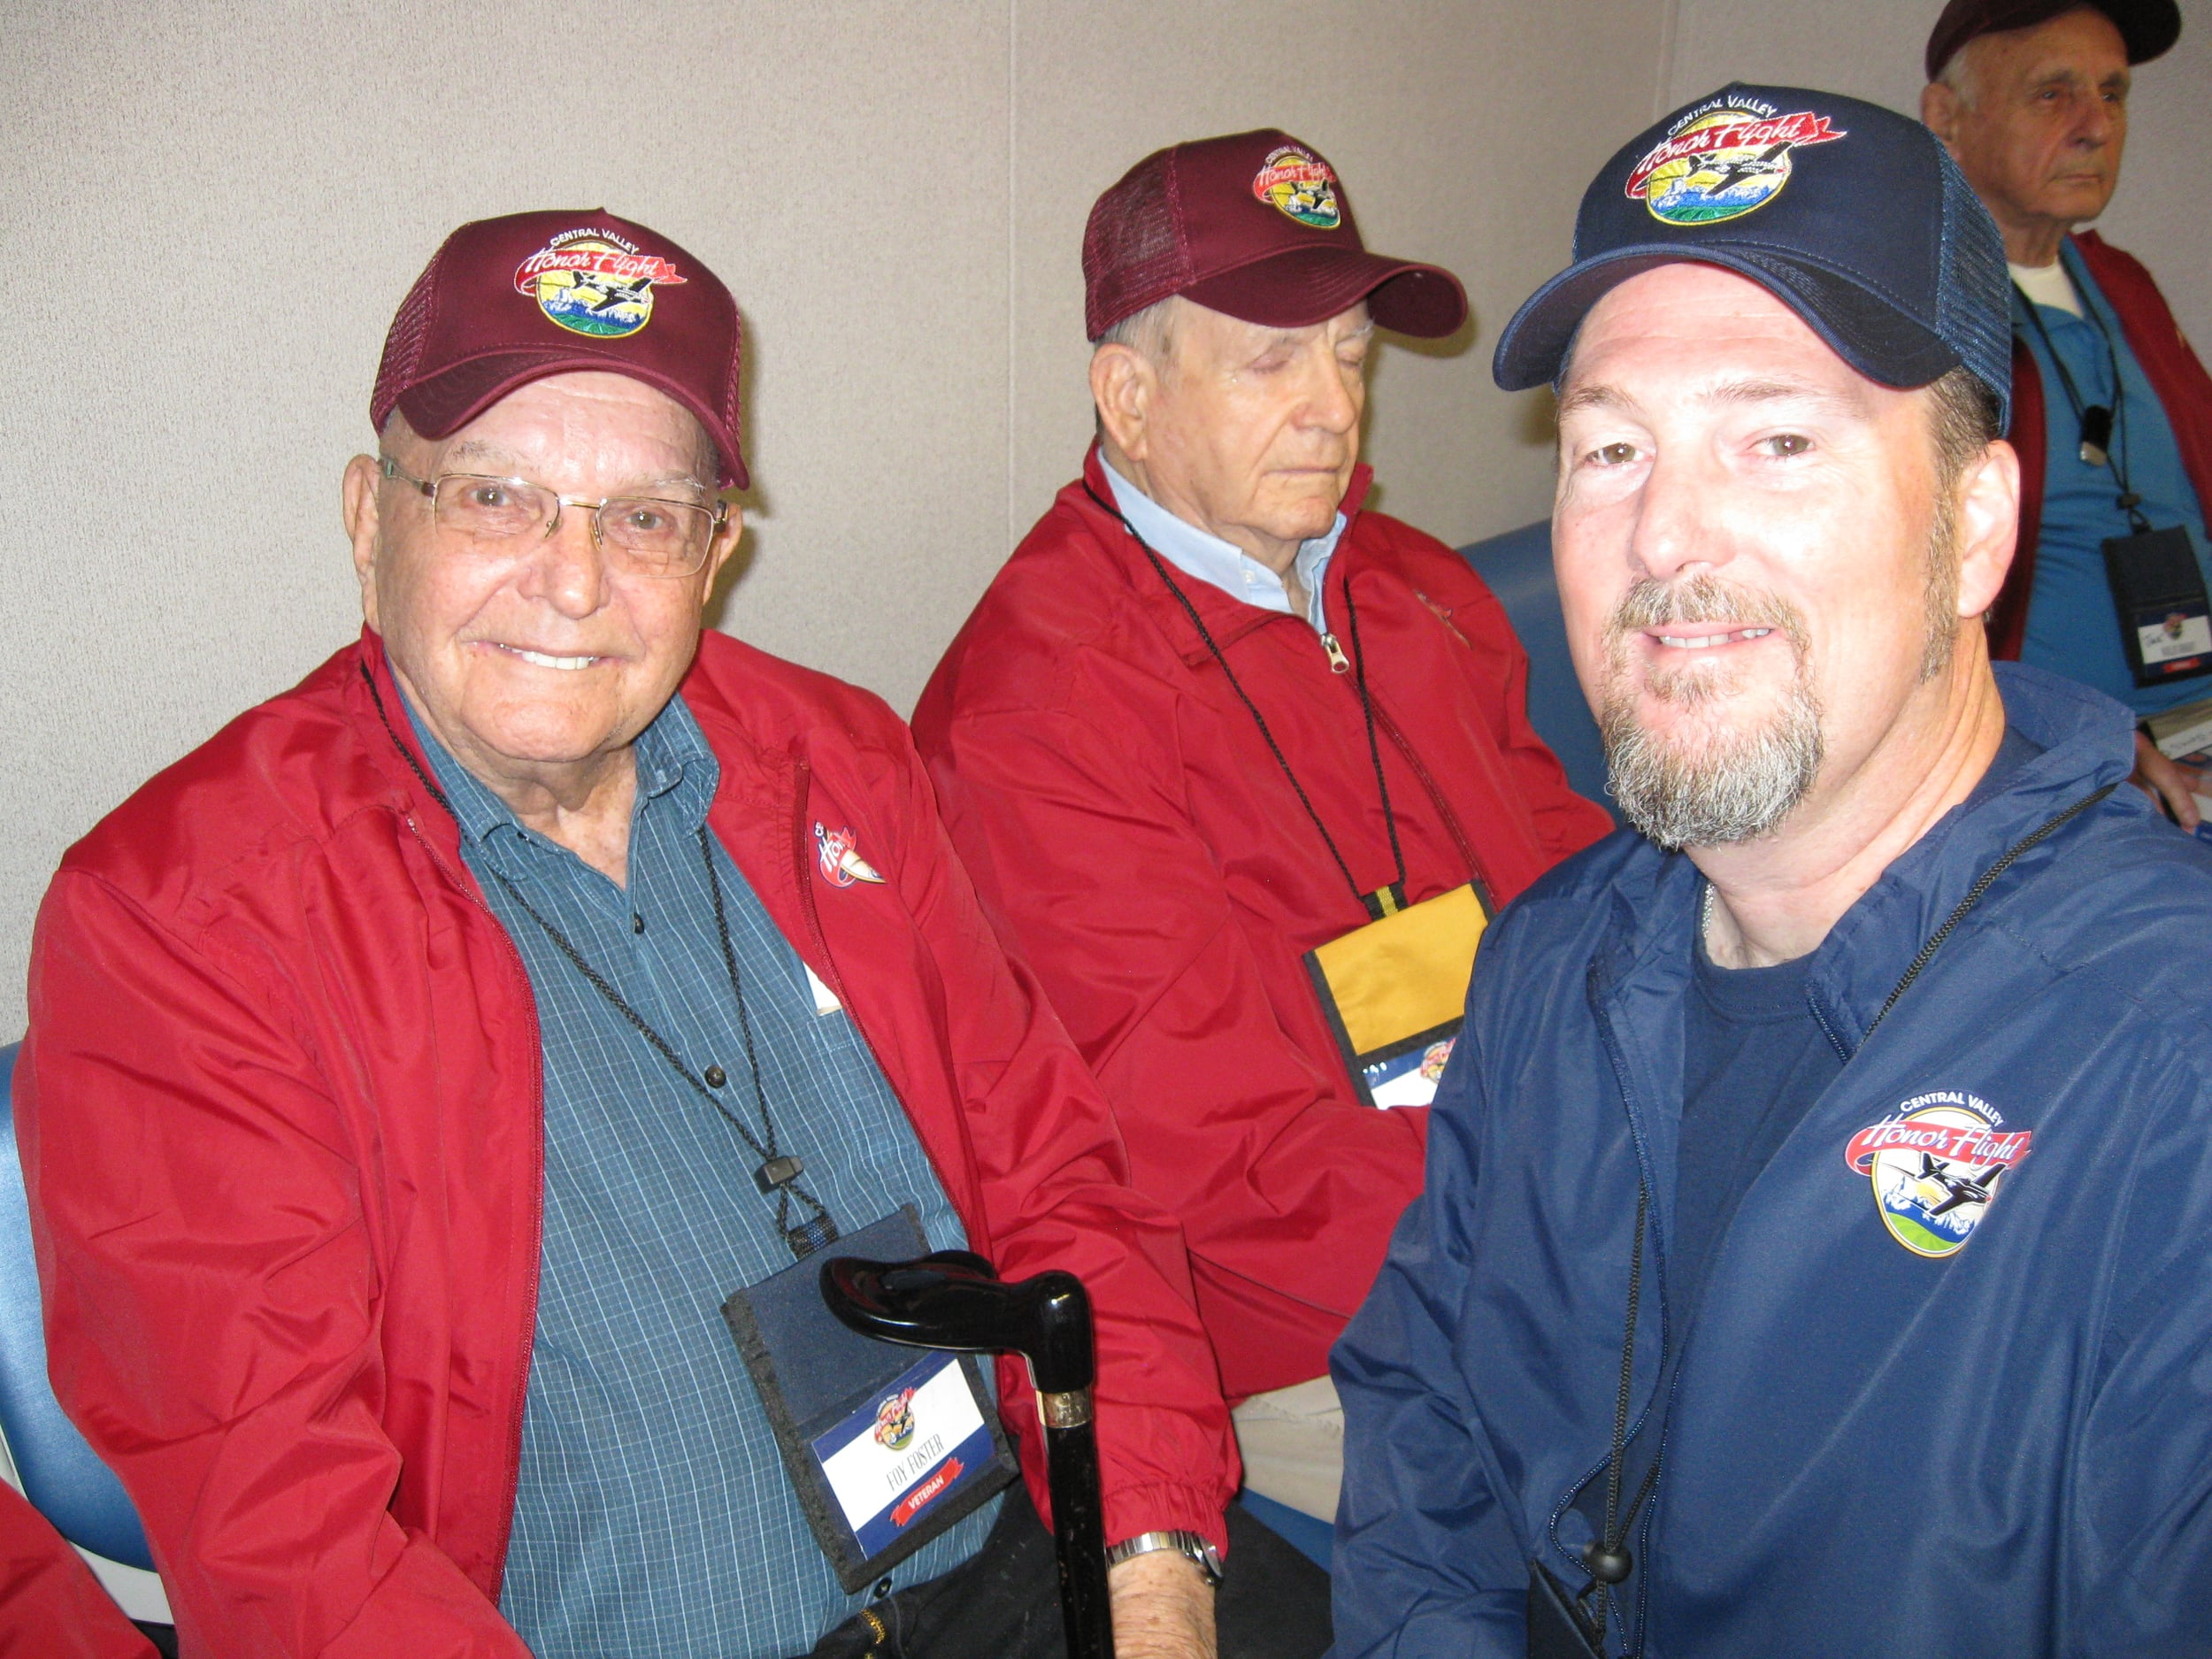 Foy Foster and his Honor Flight Guardian Jerry Jackson. Photo by Vaune Newvine)